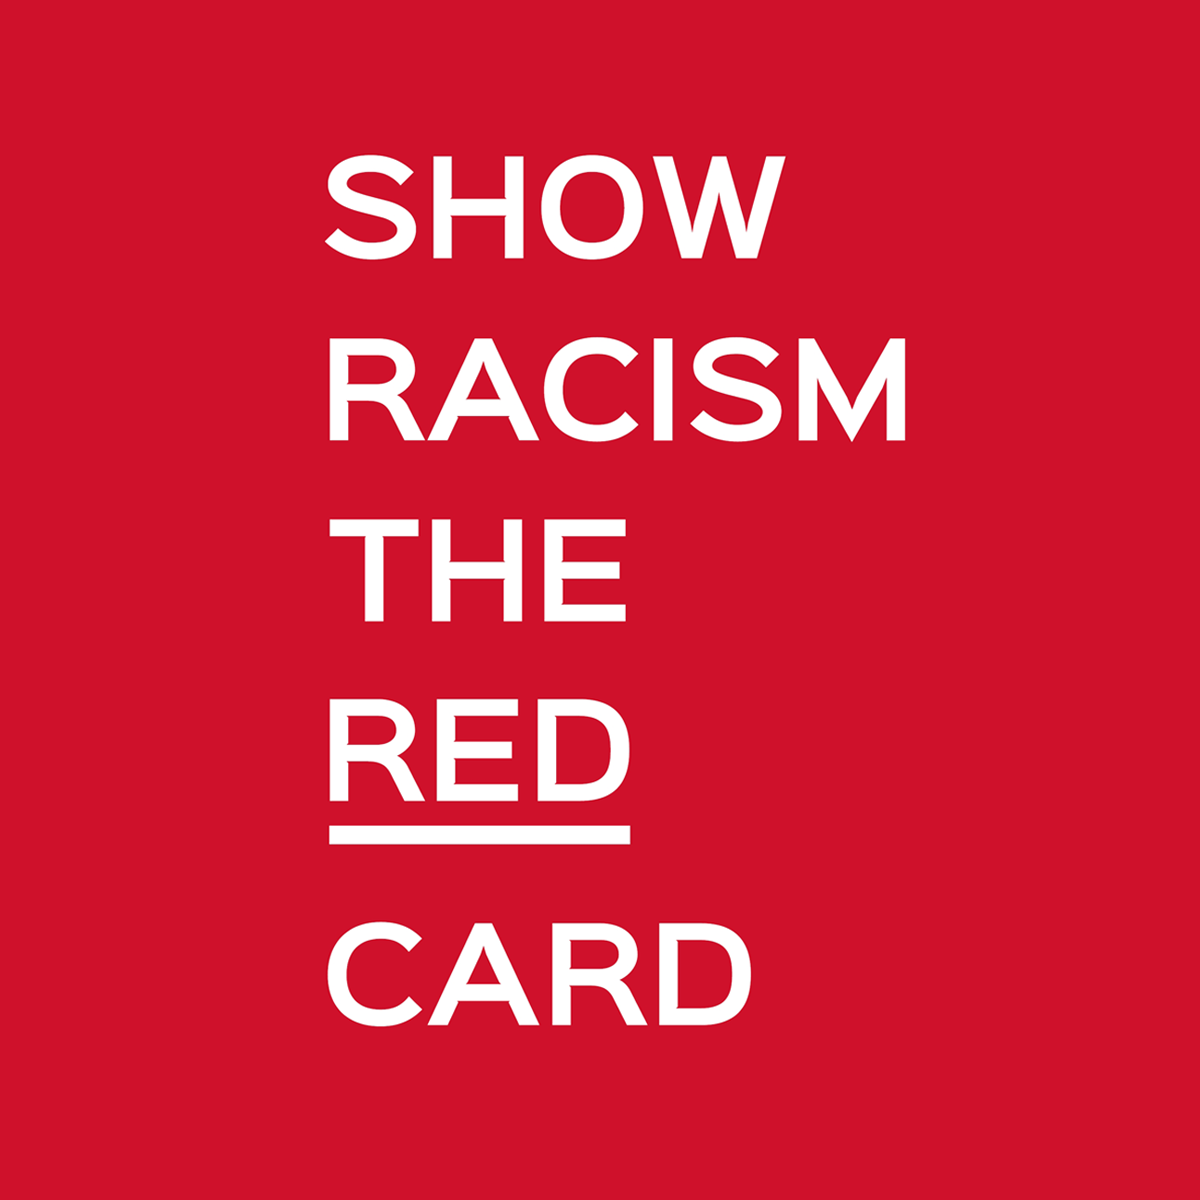 karen-national-team-1x1-show-racism-the-red-card2